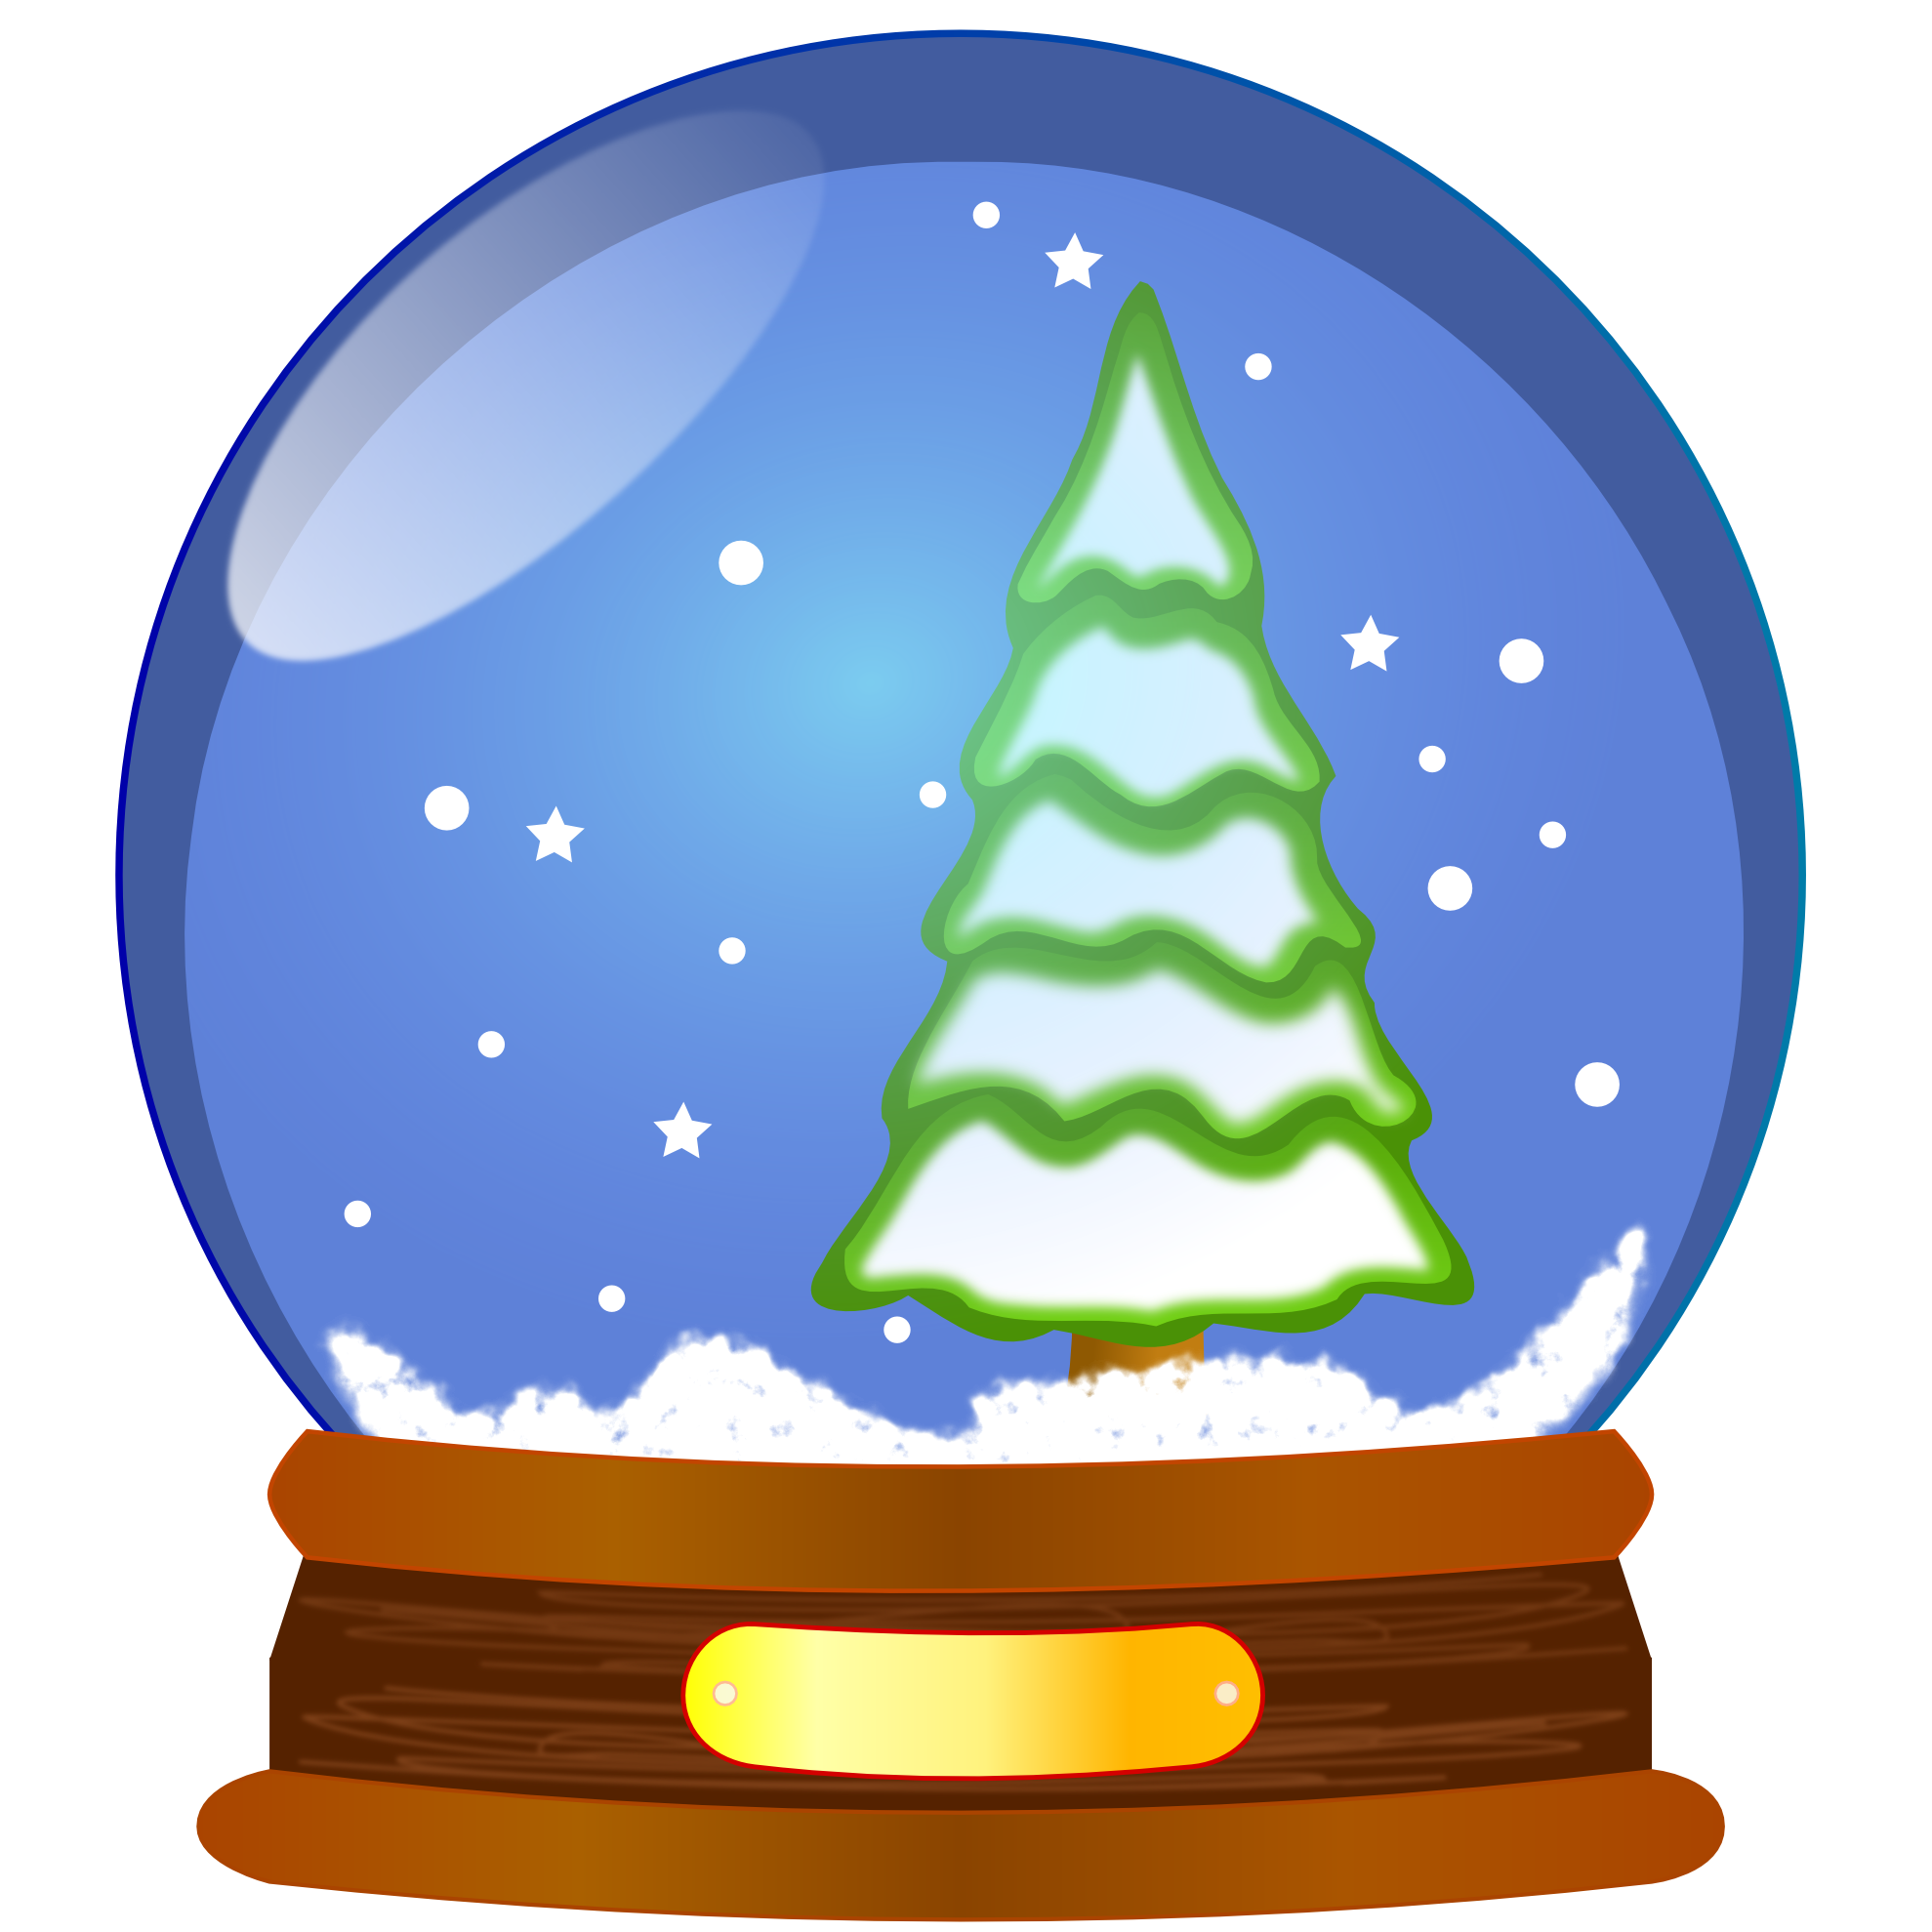 Winter snow globe clipart. Snowglobe drawing eve png library stock